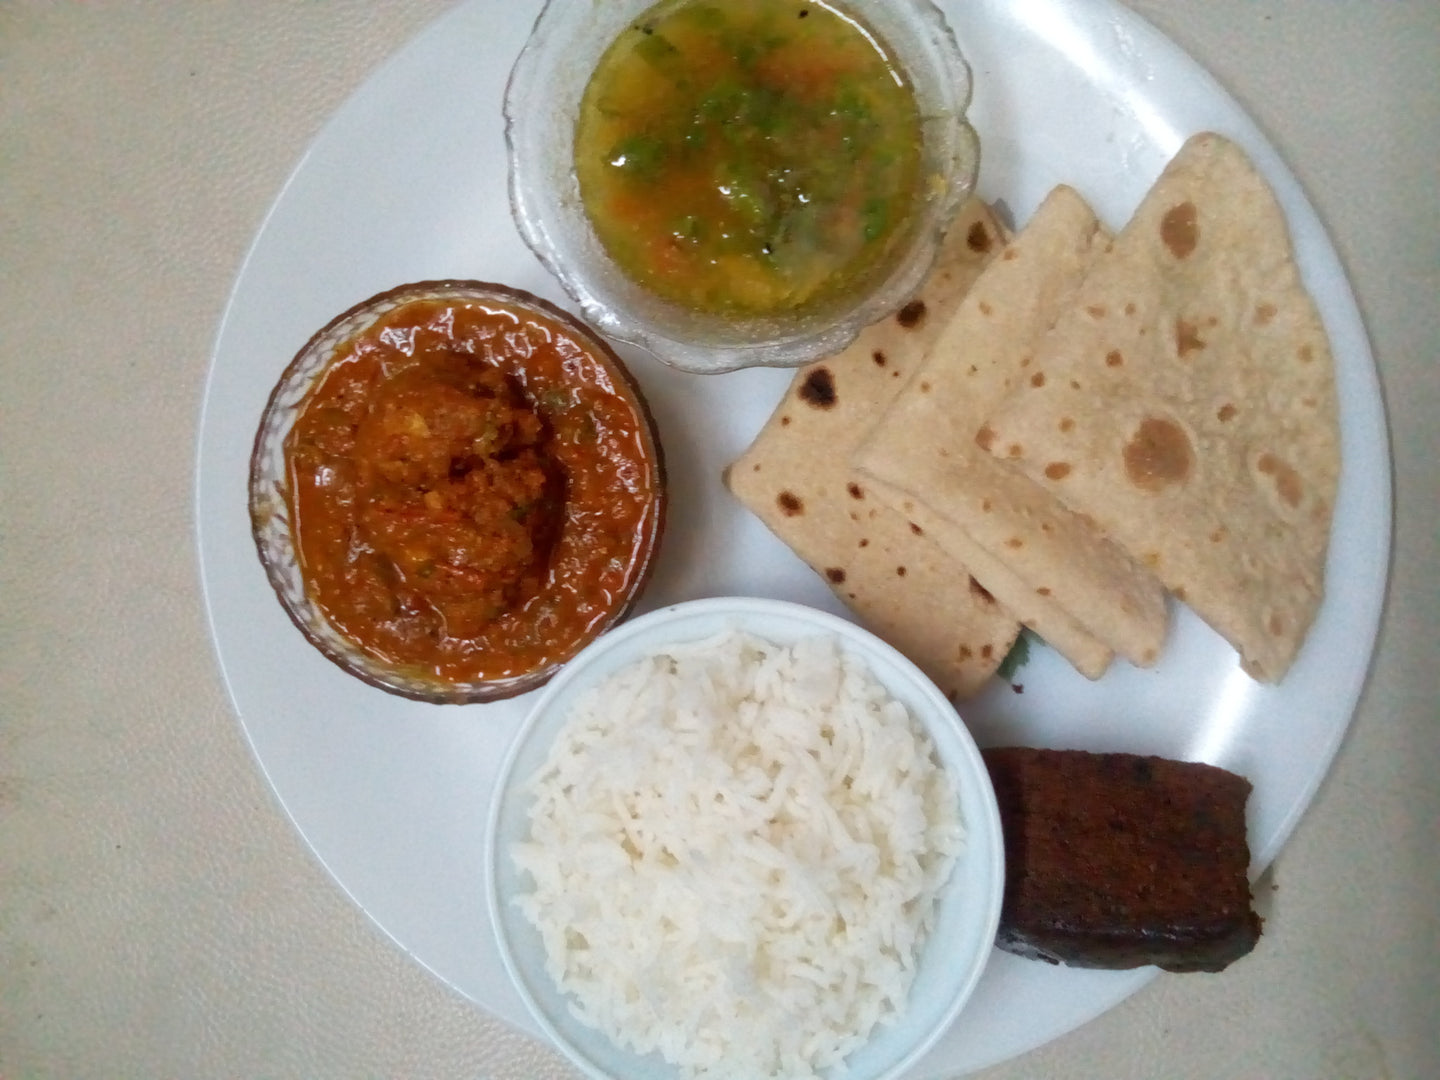 Egg Curry with Chapattis, Rice, Panchmel Dal (5grain), Curd, Dessert & Aam Panha